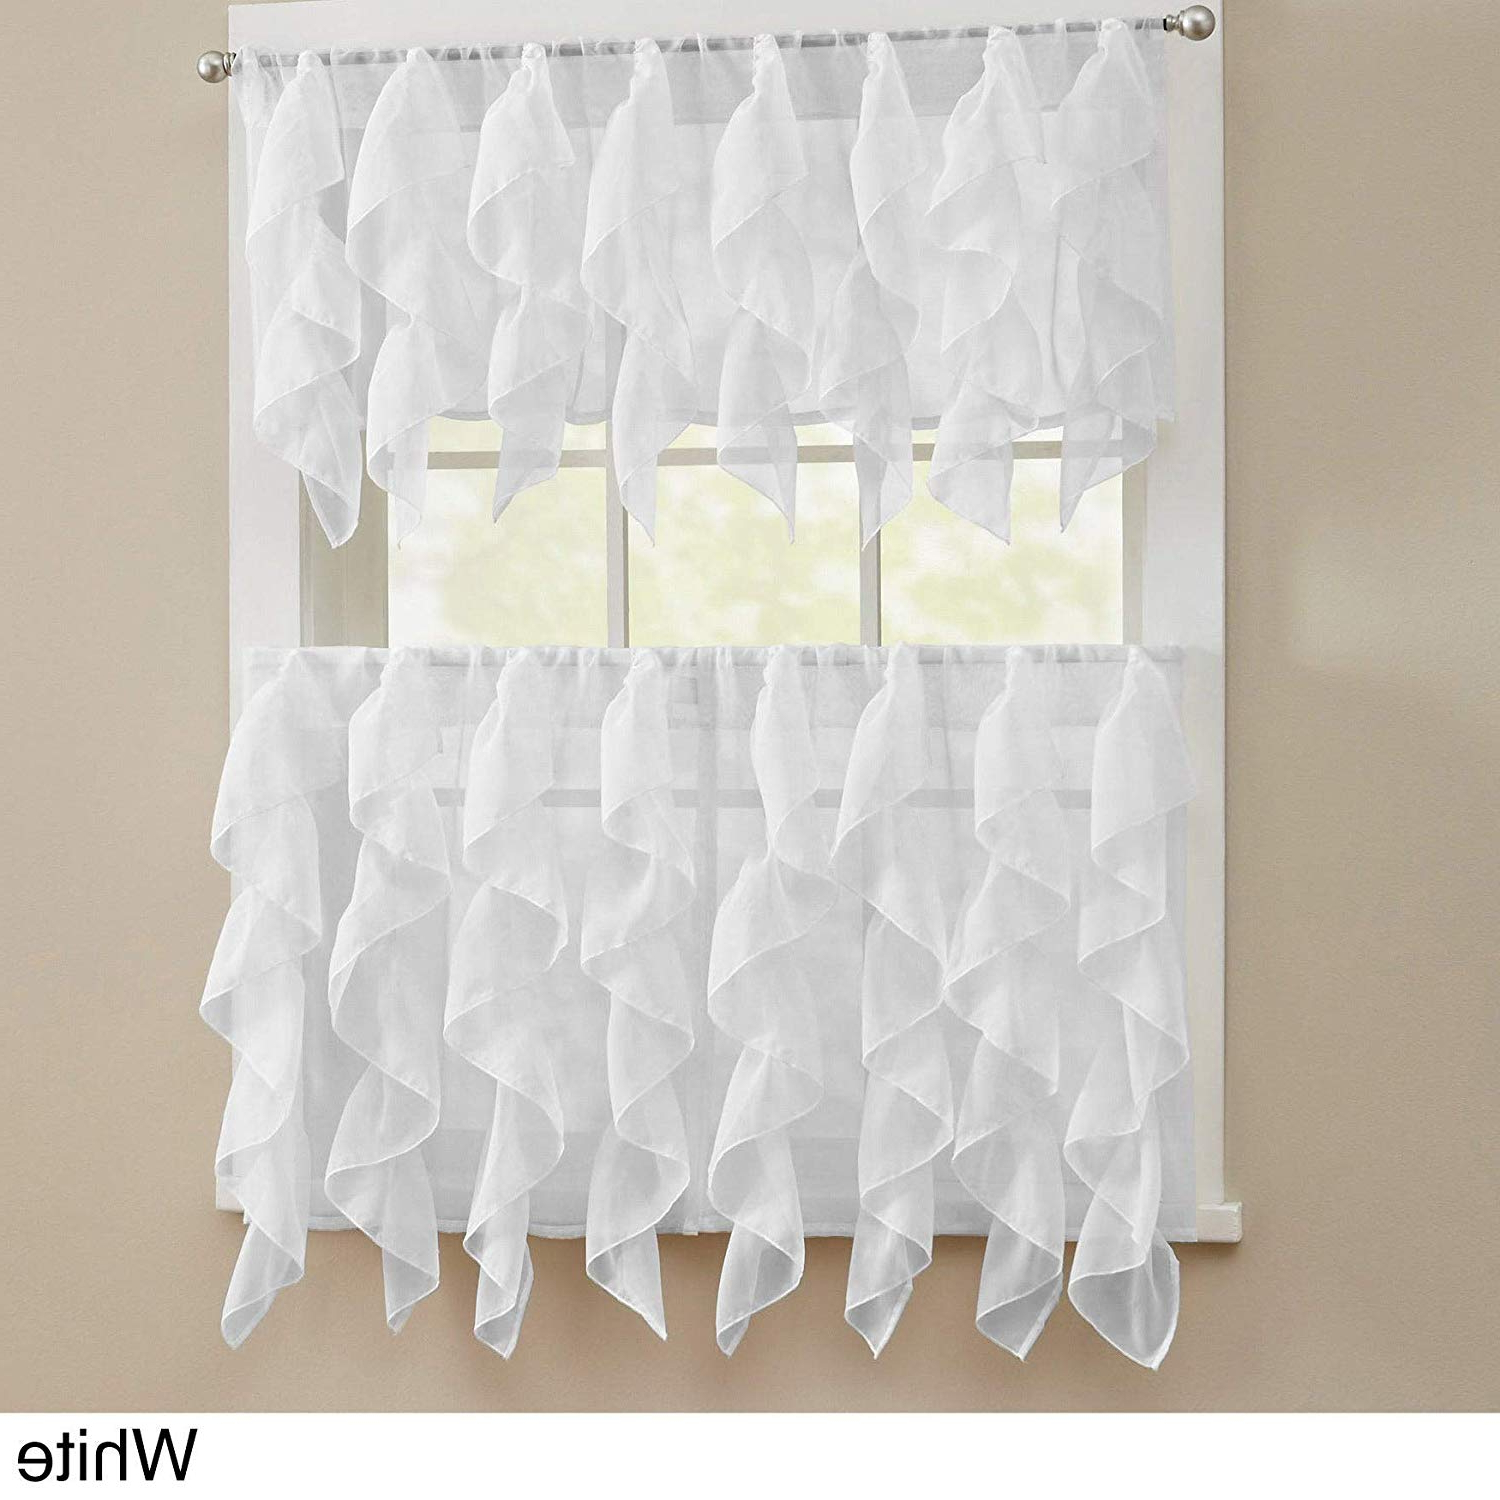 Newest Bed Bath N More Chic Sheer Voile Vertical Ruffled Tier Window Curtain Valance And Tier White 56 X 12 Intended For Vertical Ruffled Waterfall Valances And Curtain Tiers (View 11 of 20)